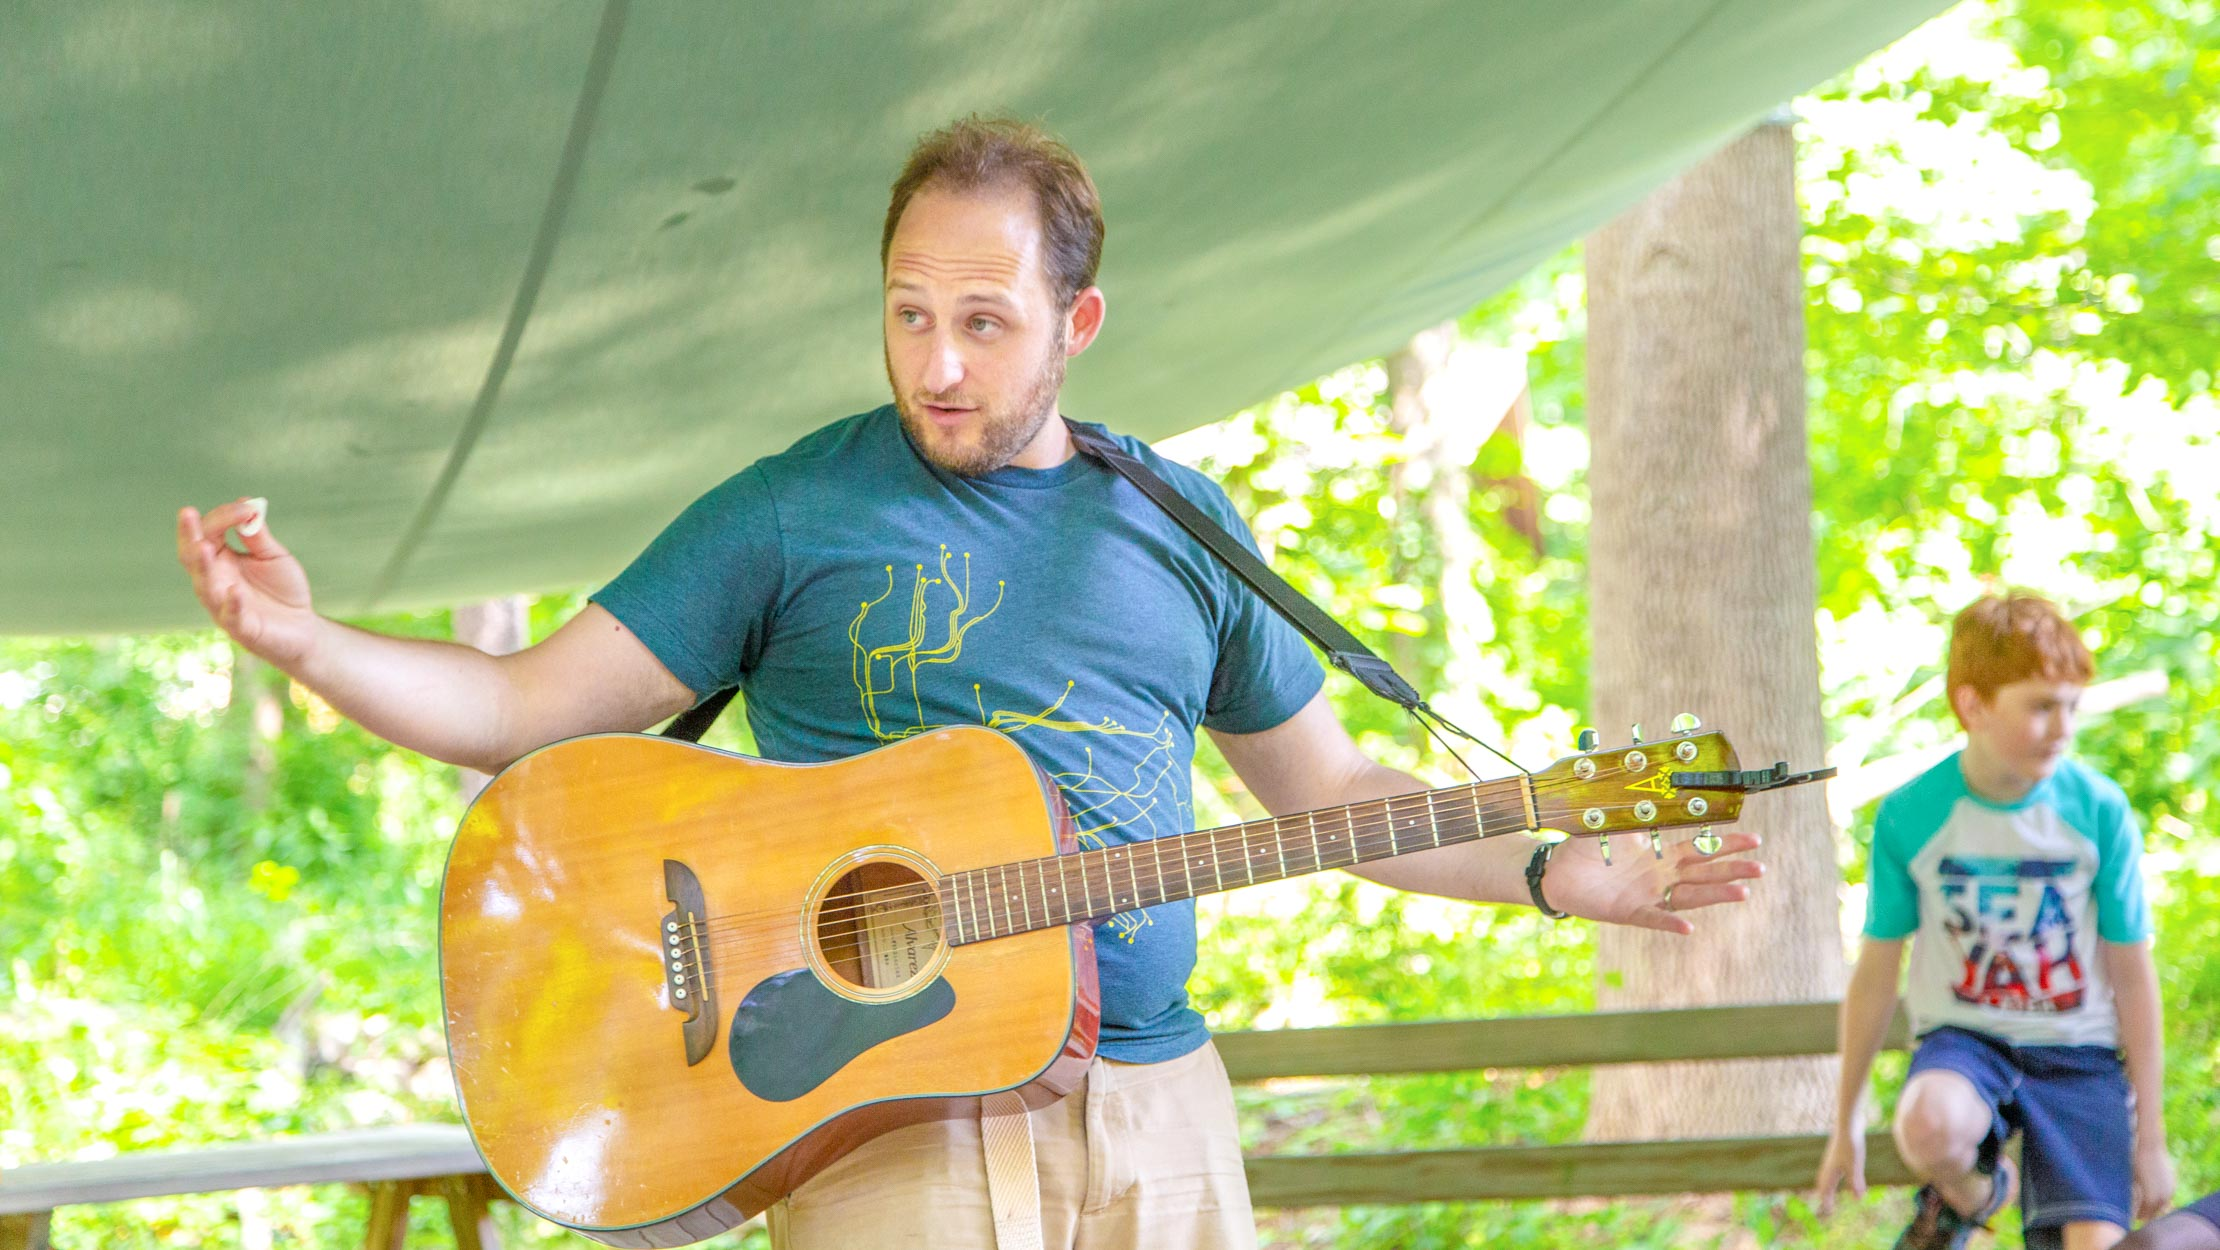 Counselor storytelling with guitar